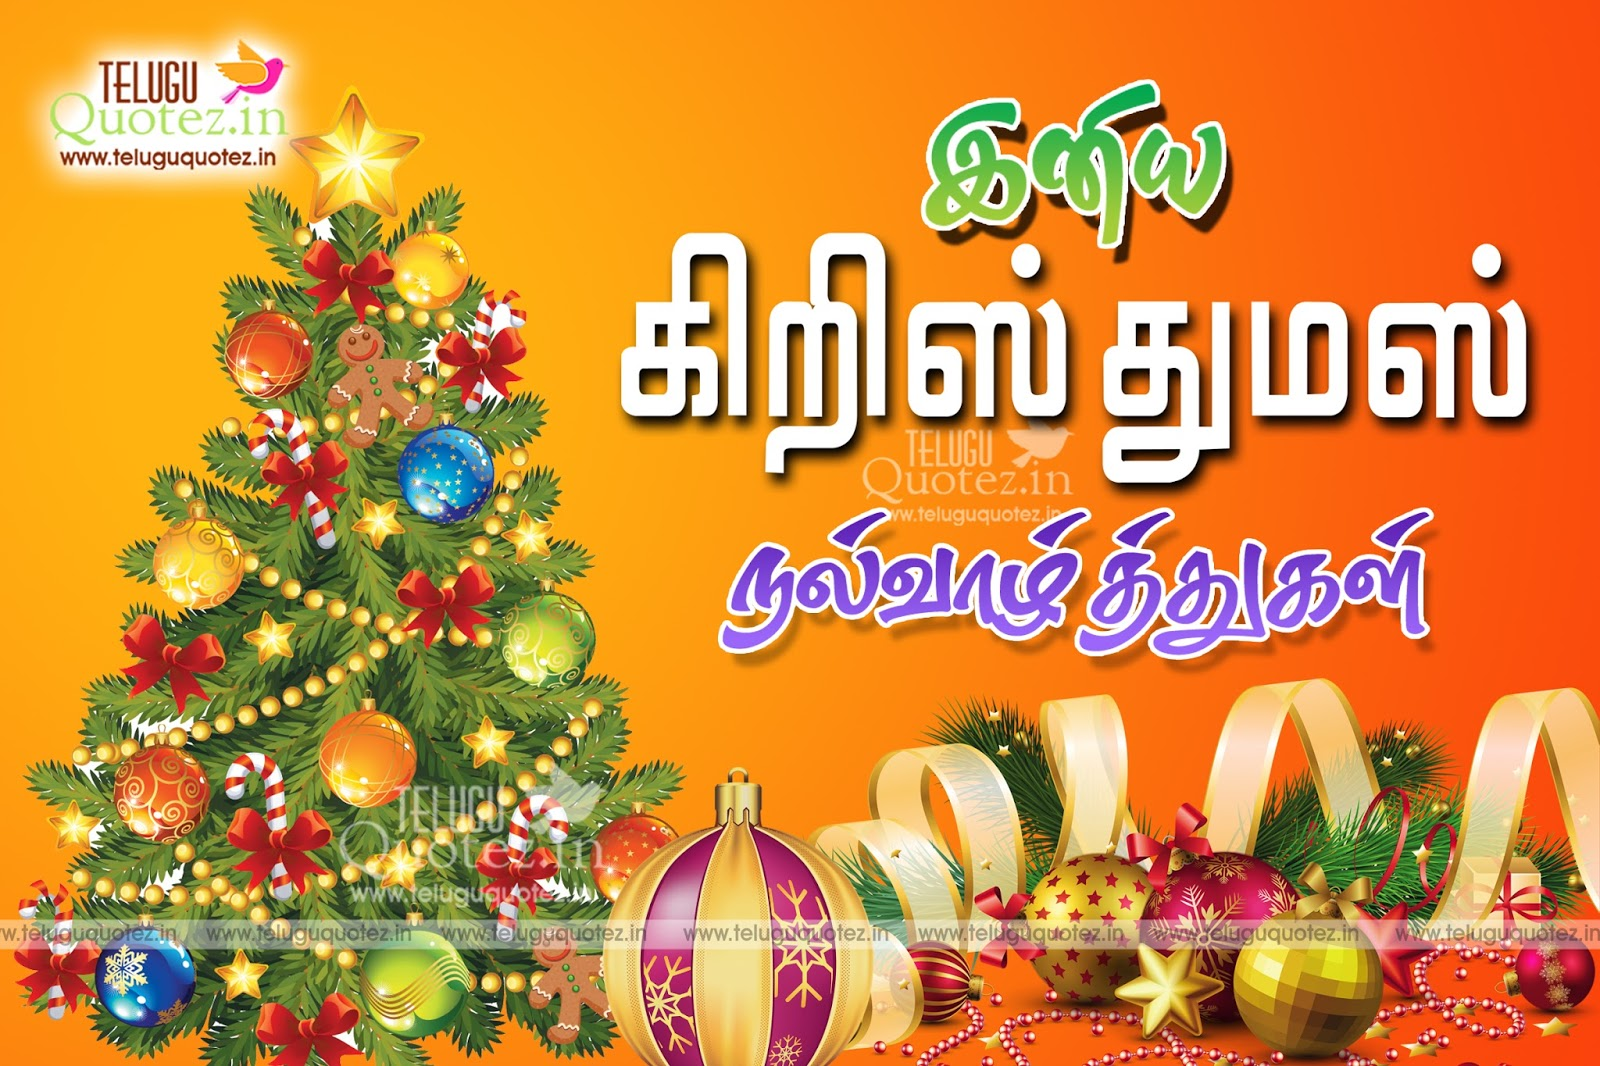 Tamil online christmas greetings cards and quotes teluguquotez tamil online christmas greetings cards and quotes m4hsunfo